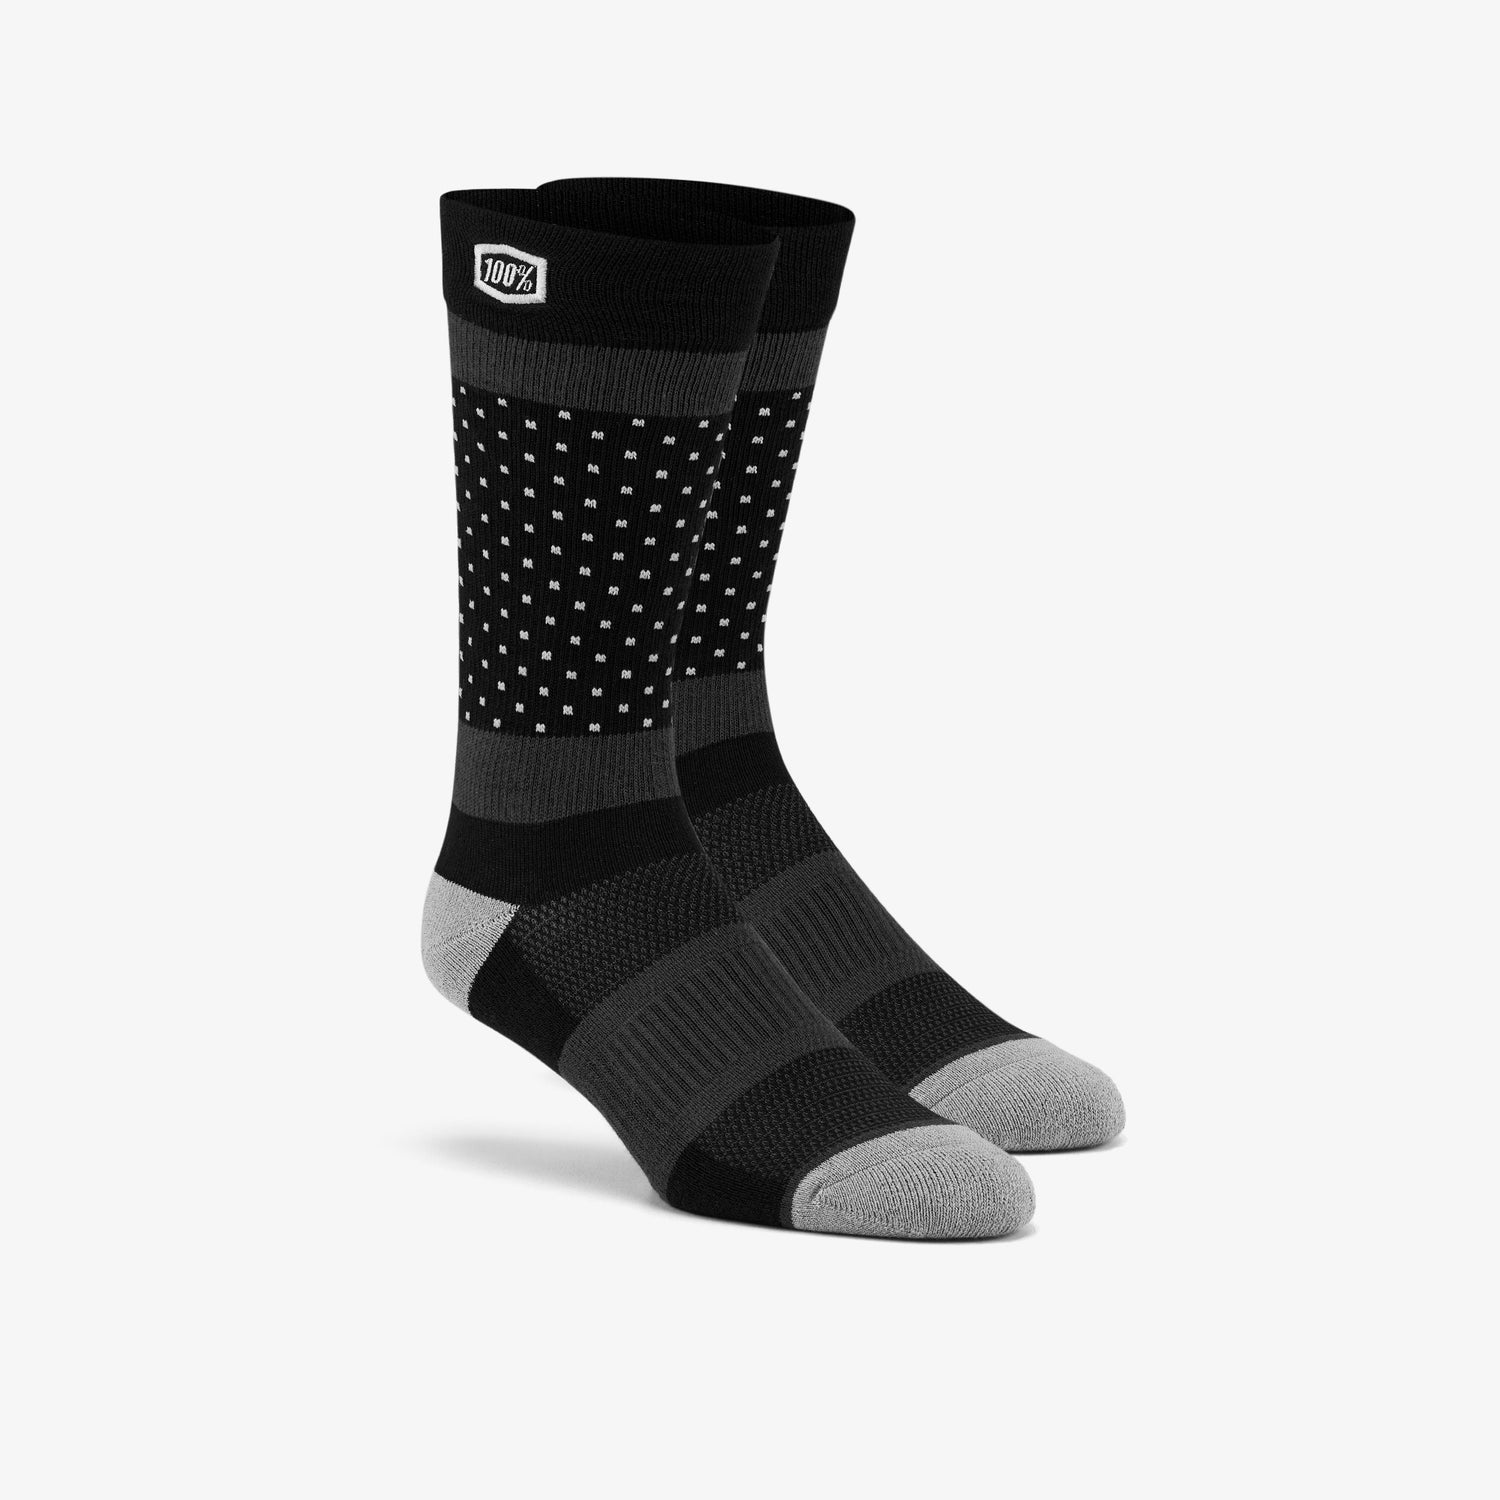 OPPOSITION Casual Socks - Black